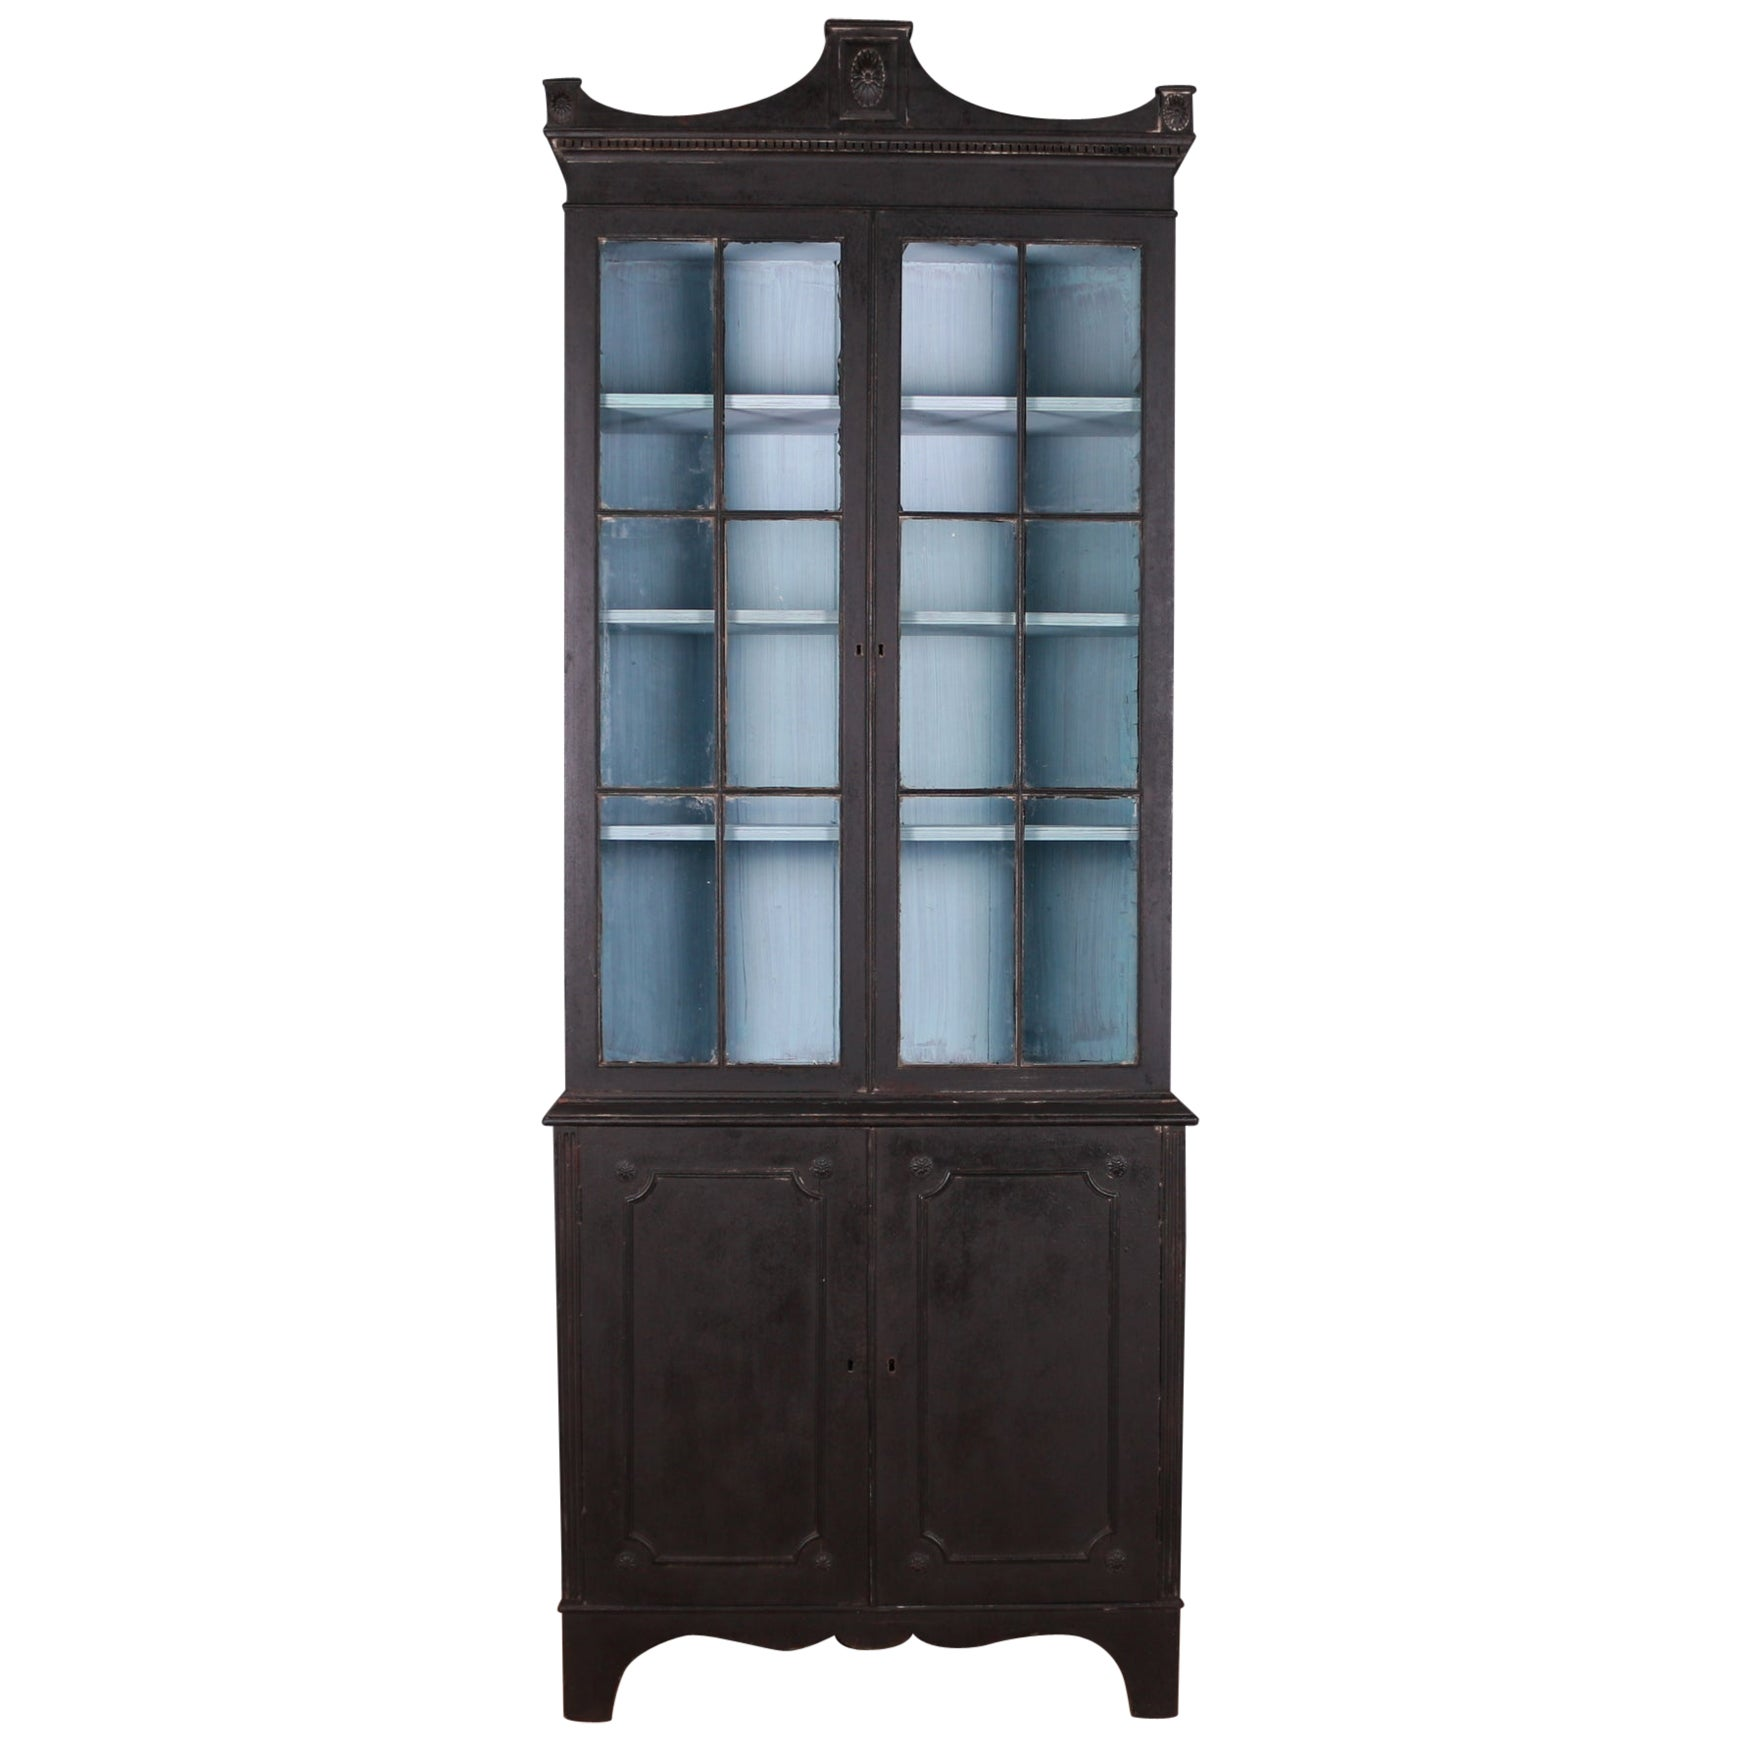 English Narrow Bookcase